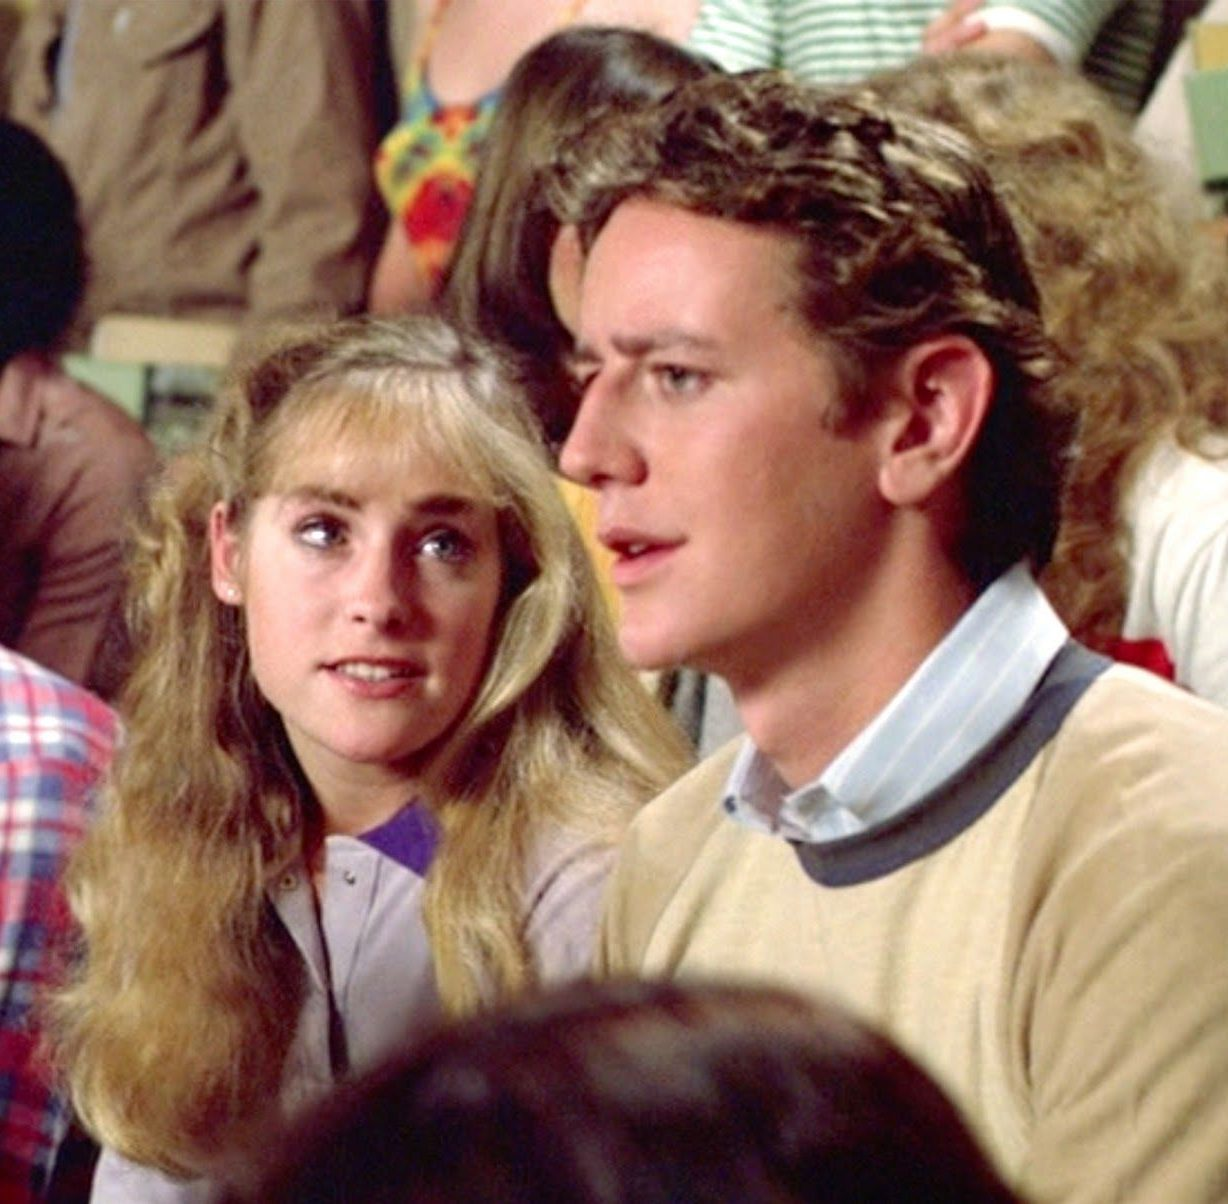 10 8 e1602499526618 Judge Reinhold: How He Got The Name 'Judge' And More You Never Knew About The 80s Star